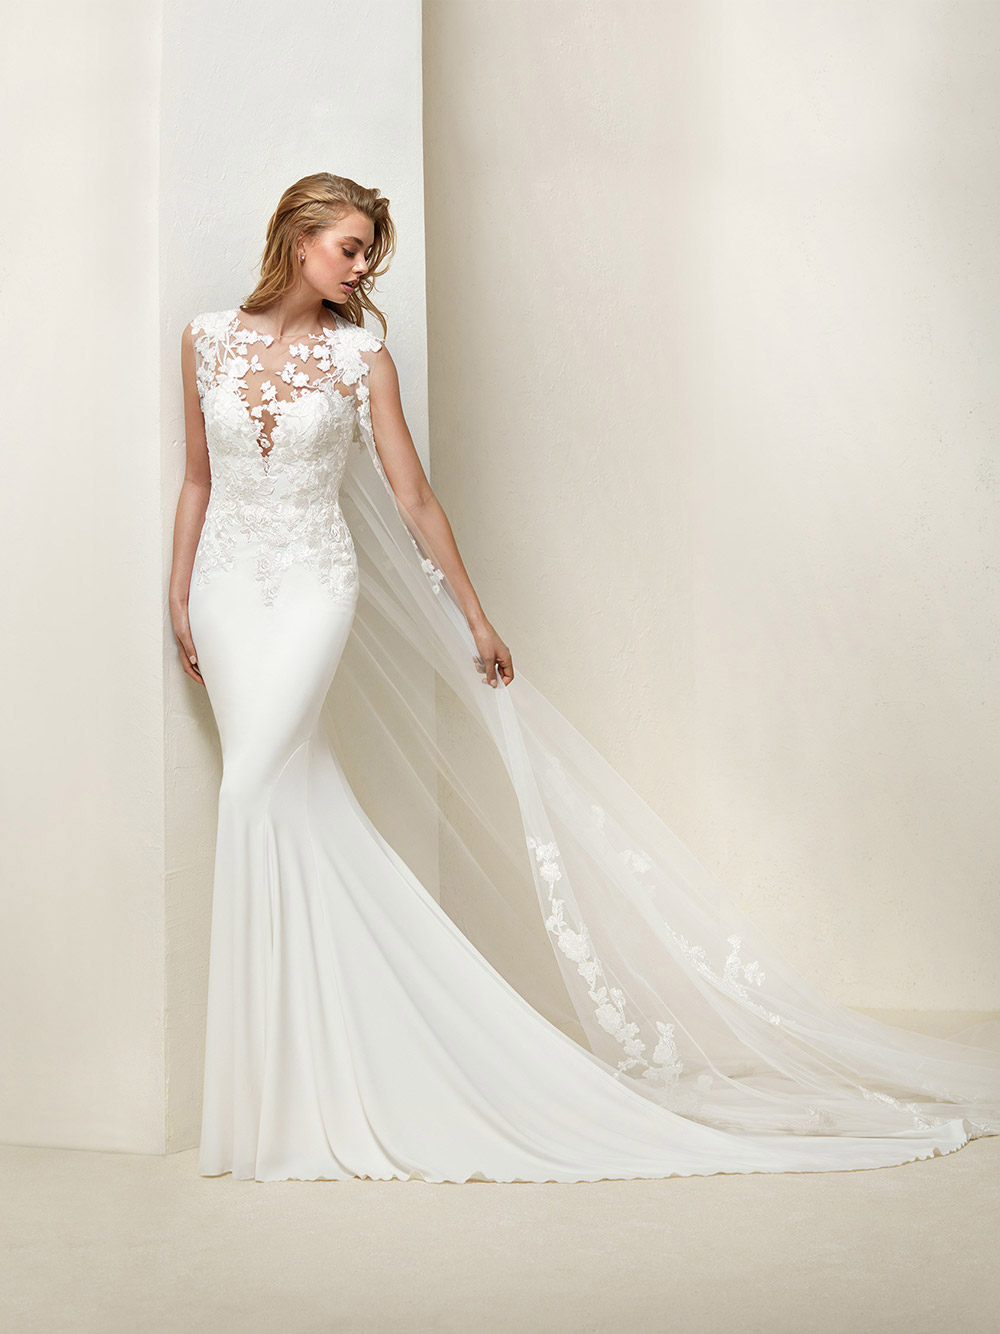 Drail - Pronovias 2018 Bridal Collection. www.theweddingnotebook.com